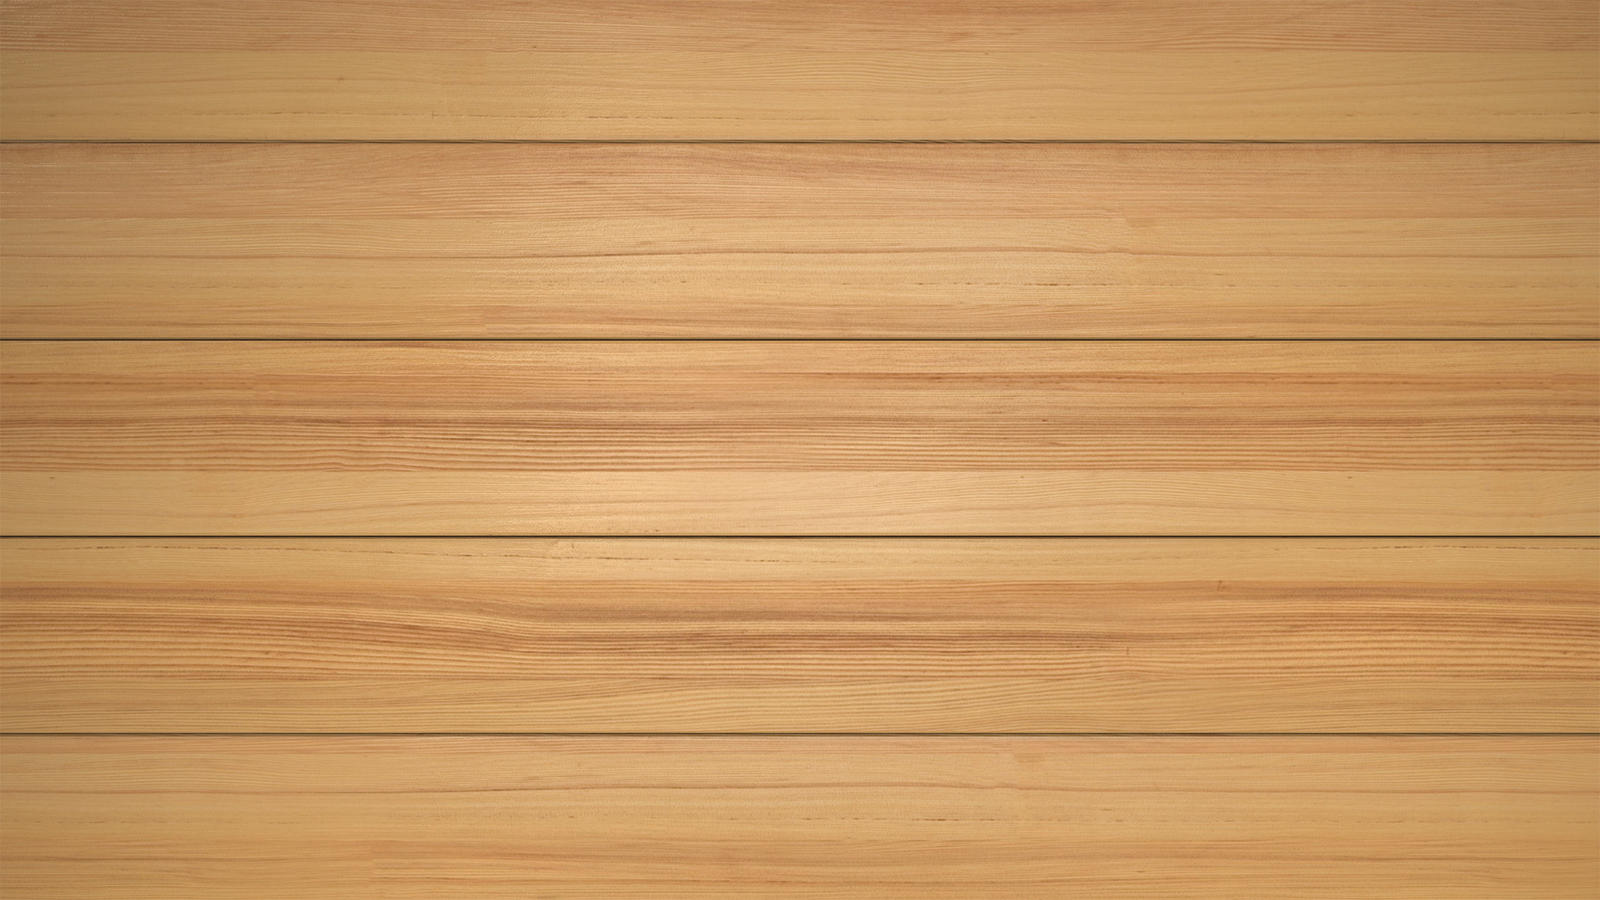 Wood Planks Background nr 2 by RVMProductions on DeviantArt